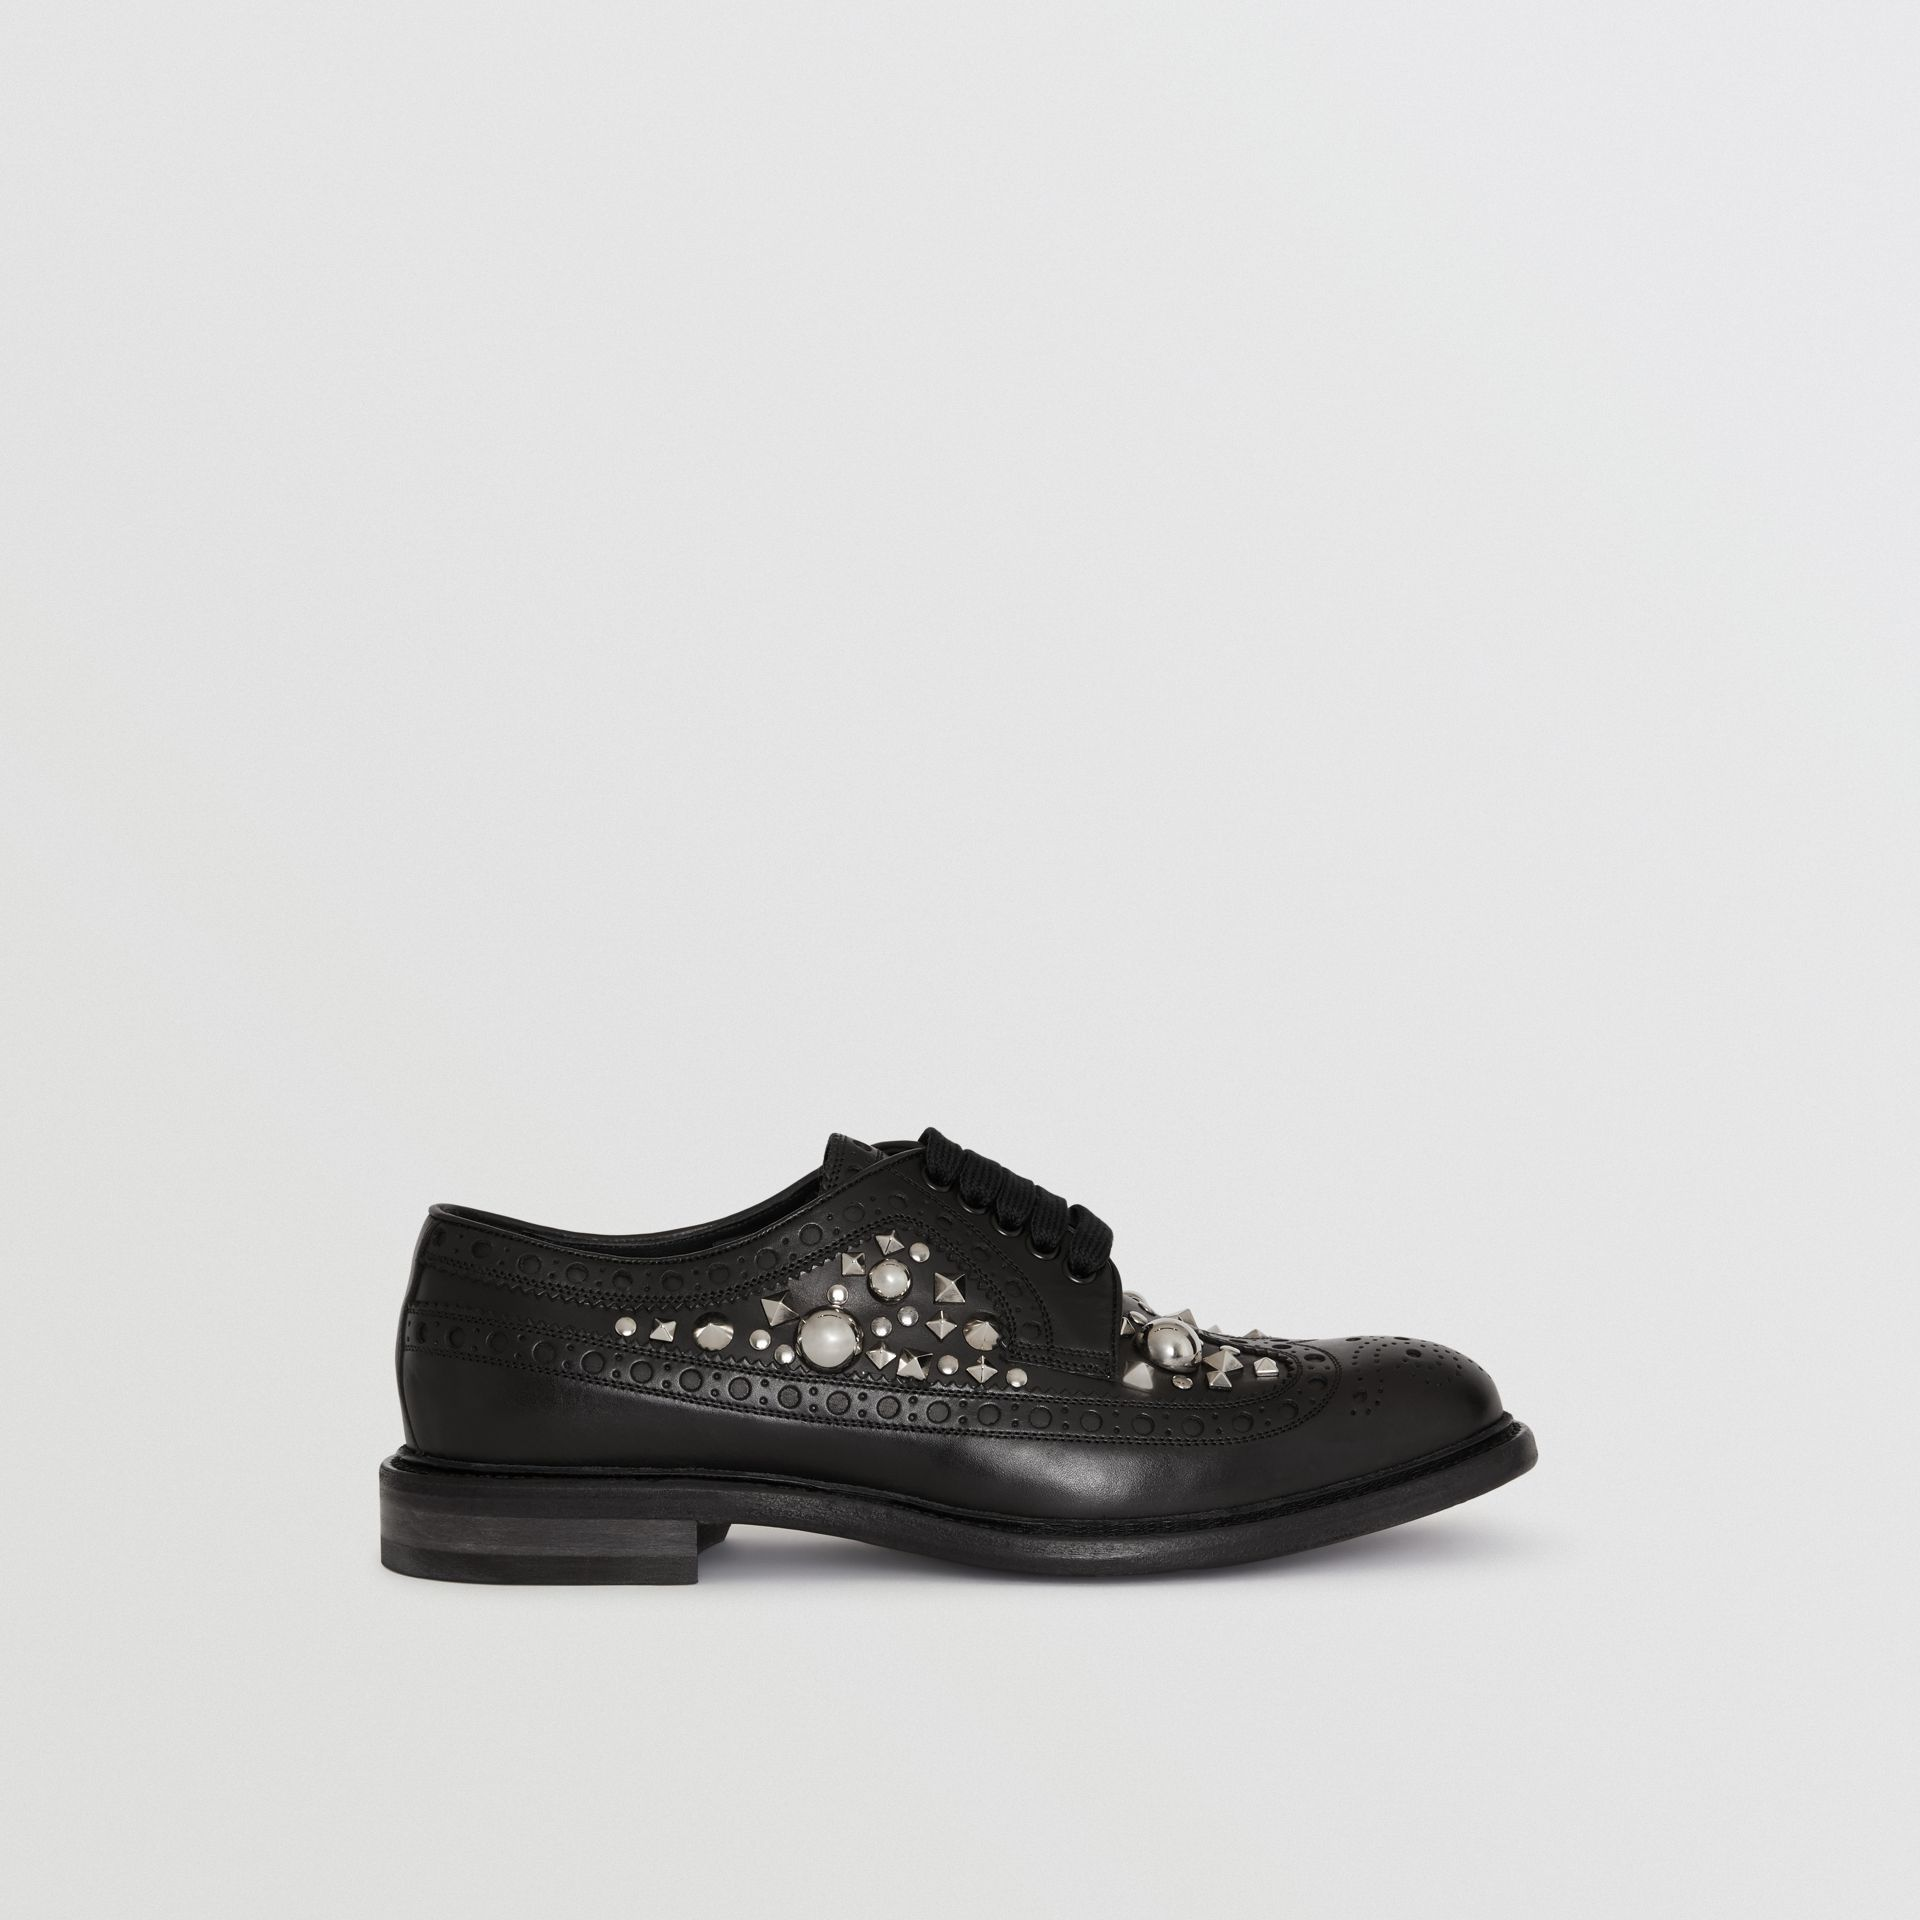 Stud Detail Leather Brogues in Black - Men | Burberry - gallery image 5